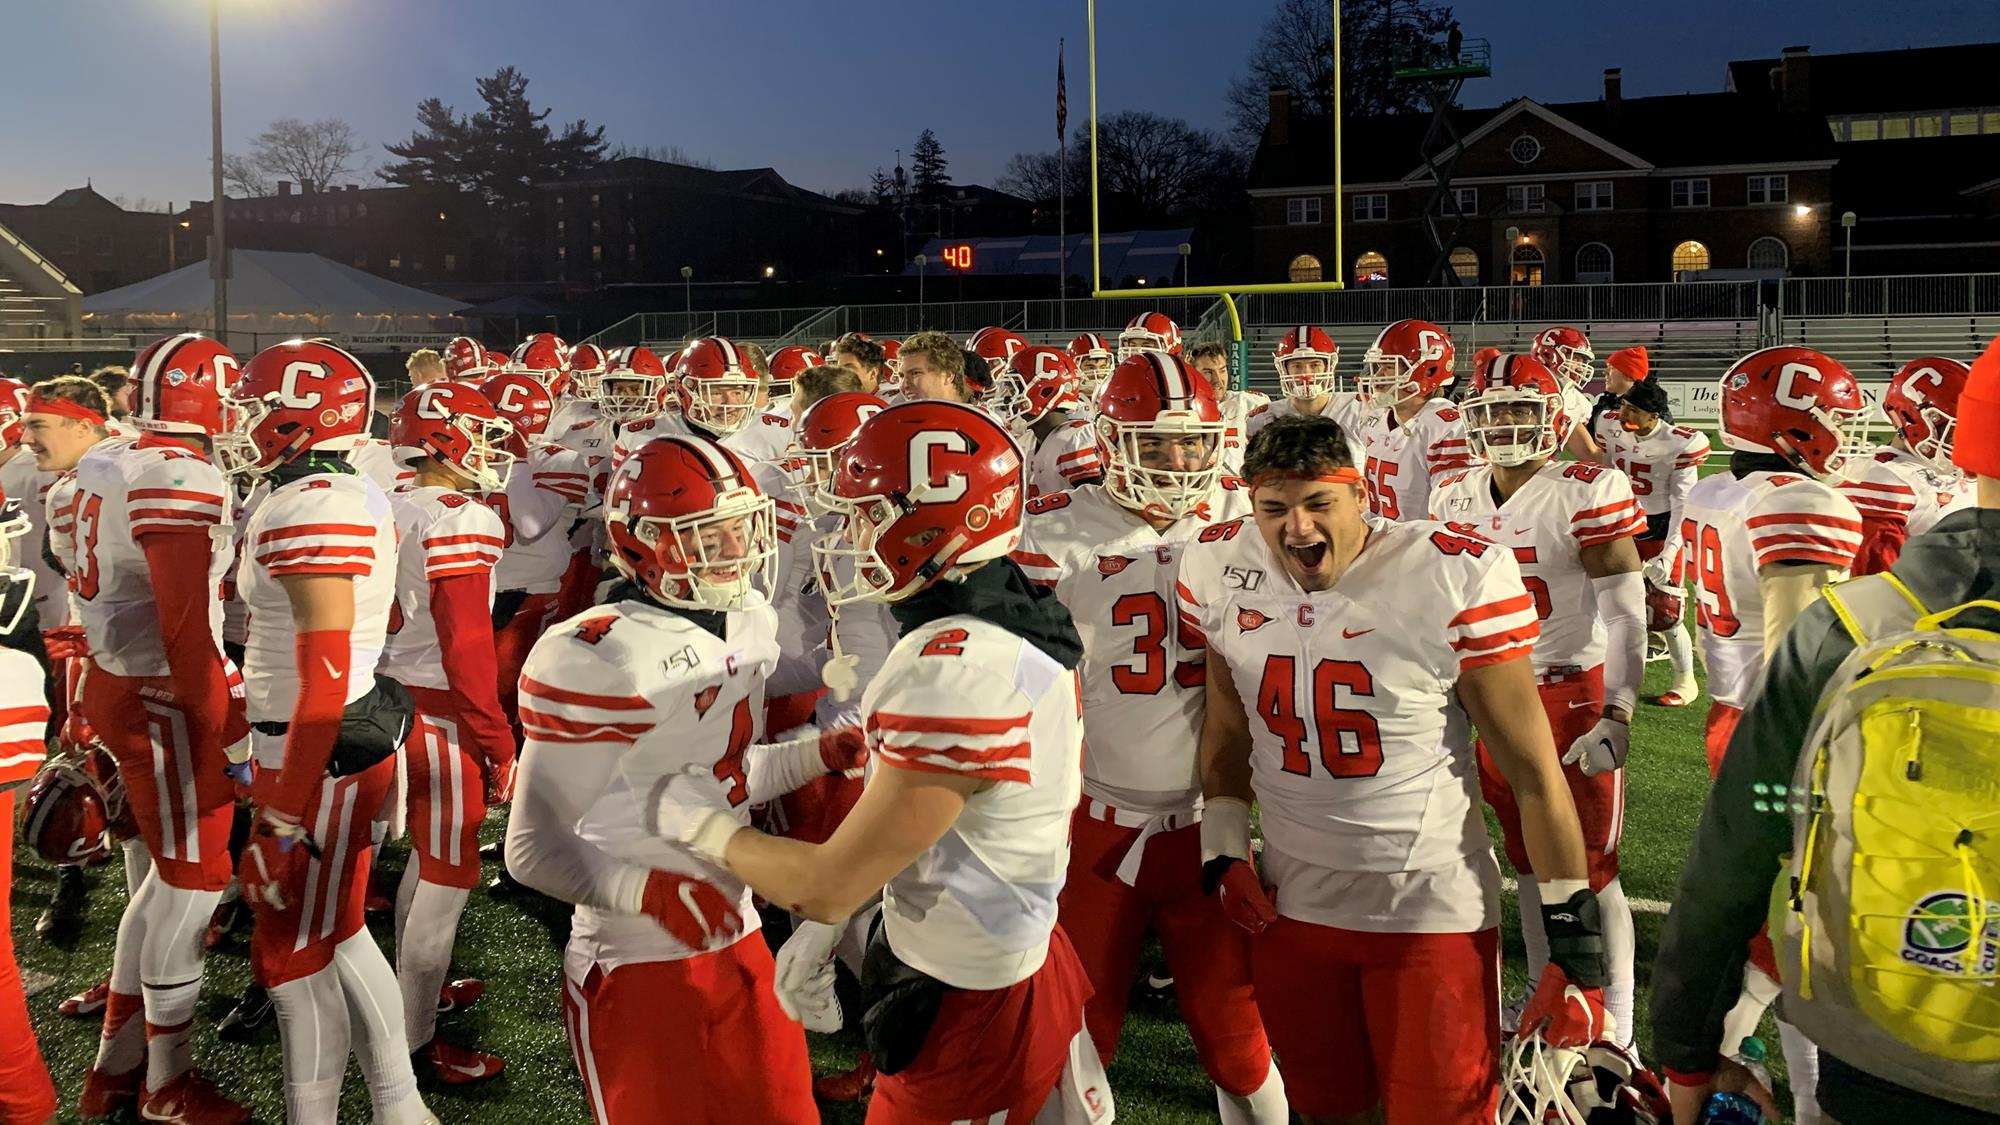 The Cornell football team celebrates on the field following its 20-17 win over No. 12 Dartmouth on Saturday, Nov. 16, 2019 at Memorial Field in Hanover, N.H.